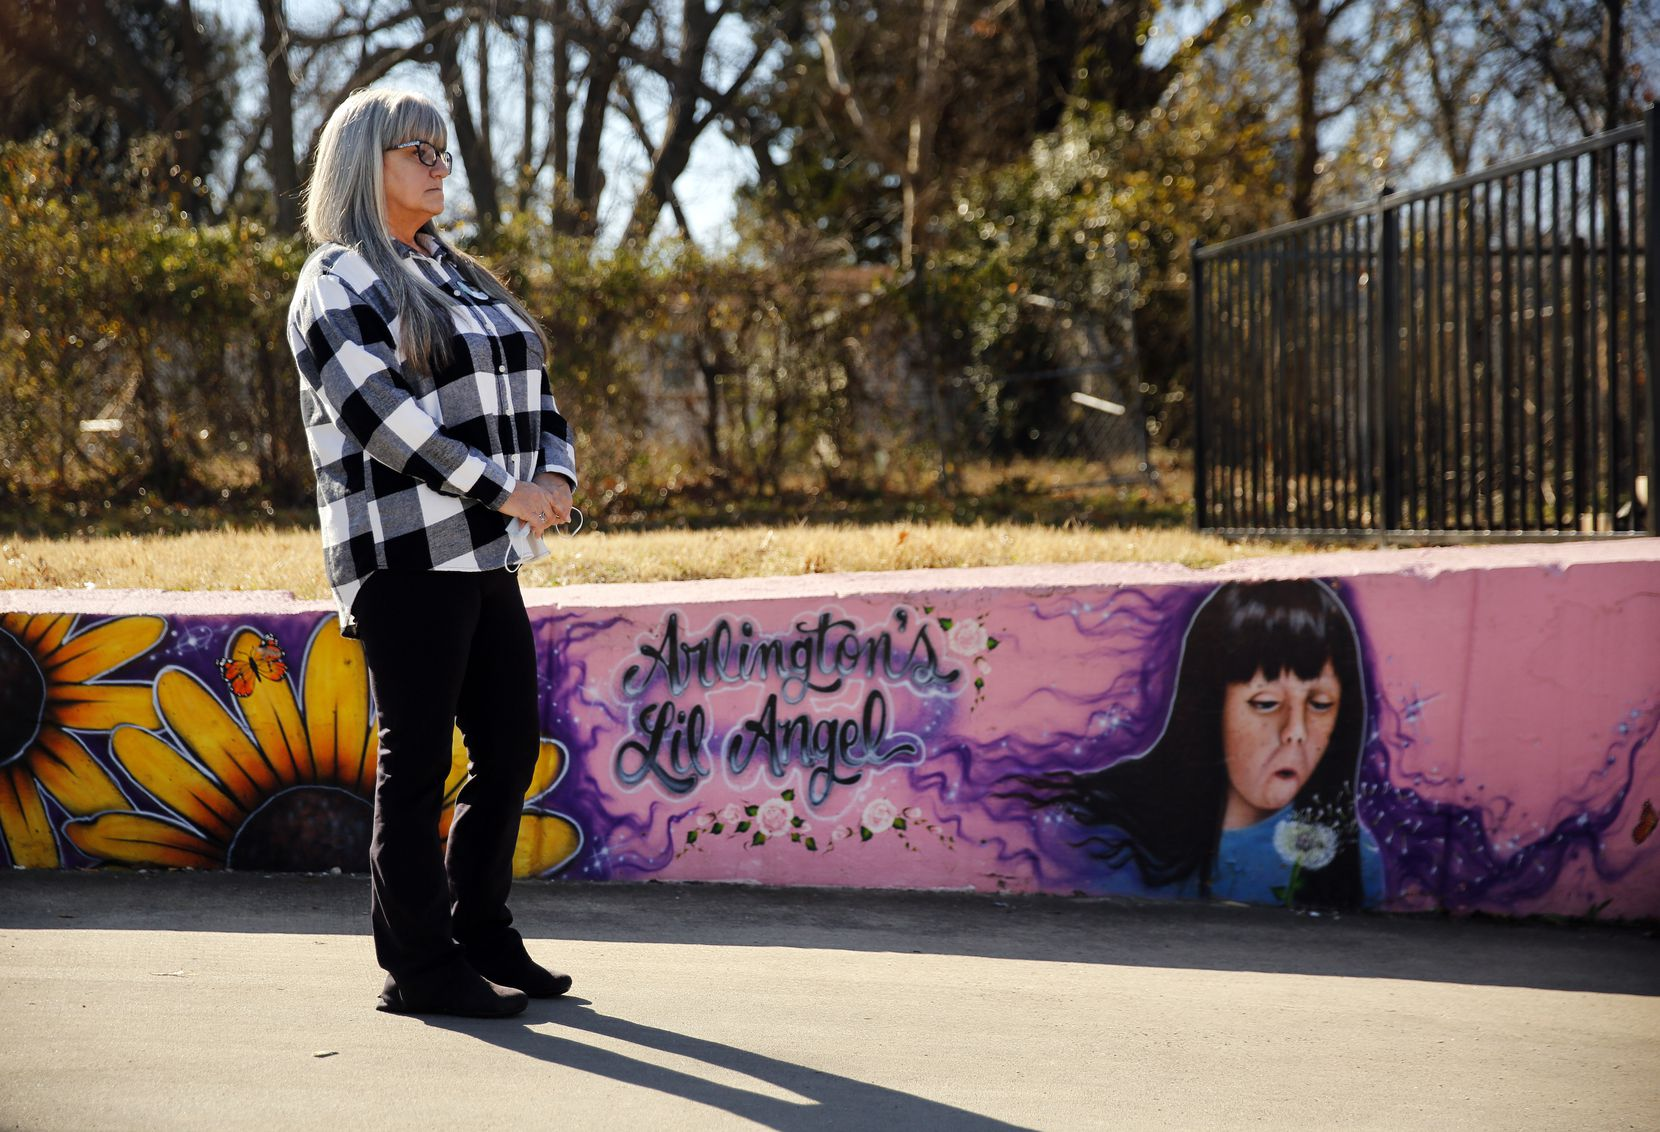 Amber Hagerman's mother Donna Williams waits her turn to speak during a press conference at her daughter's abduction site in E. Arlington, Texas, Wednesday, January 13, 2021. A mural in her honor is displayed on the parking lot wall.  On the 25th anniversary of Amber Hagerman's death, Donna spoke about her daughter and pleaded for the killer to turn themselves into the Arlington Police Department. The department held a press event to provide new details surrounding the abduction and subsequent murder of the little girl that occurred on January 13, 1996.